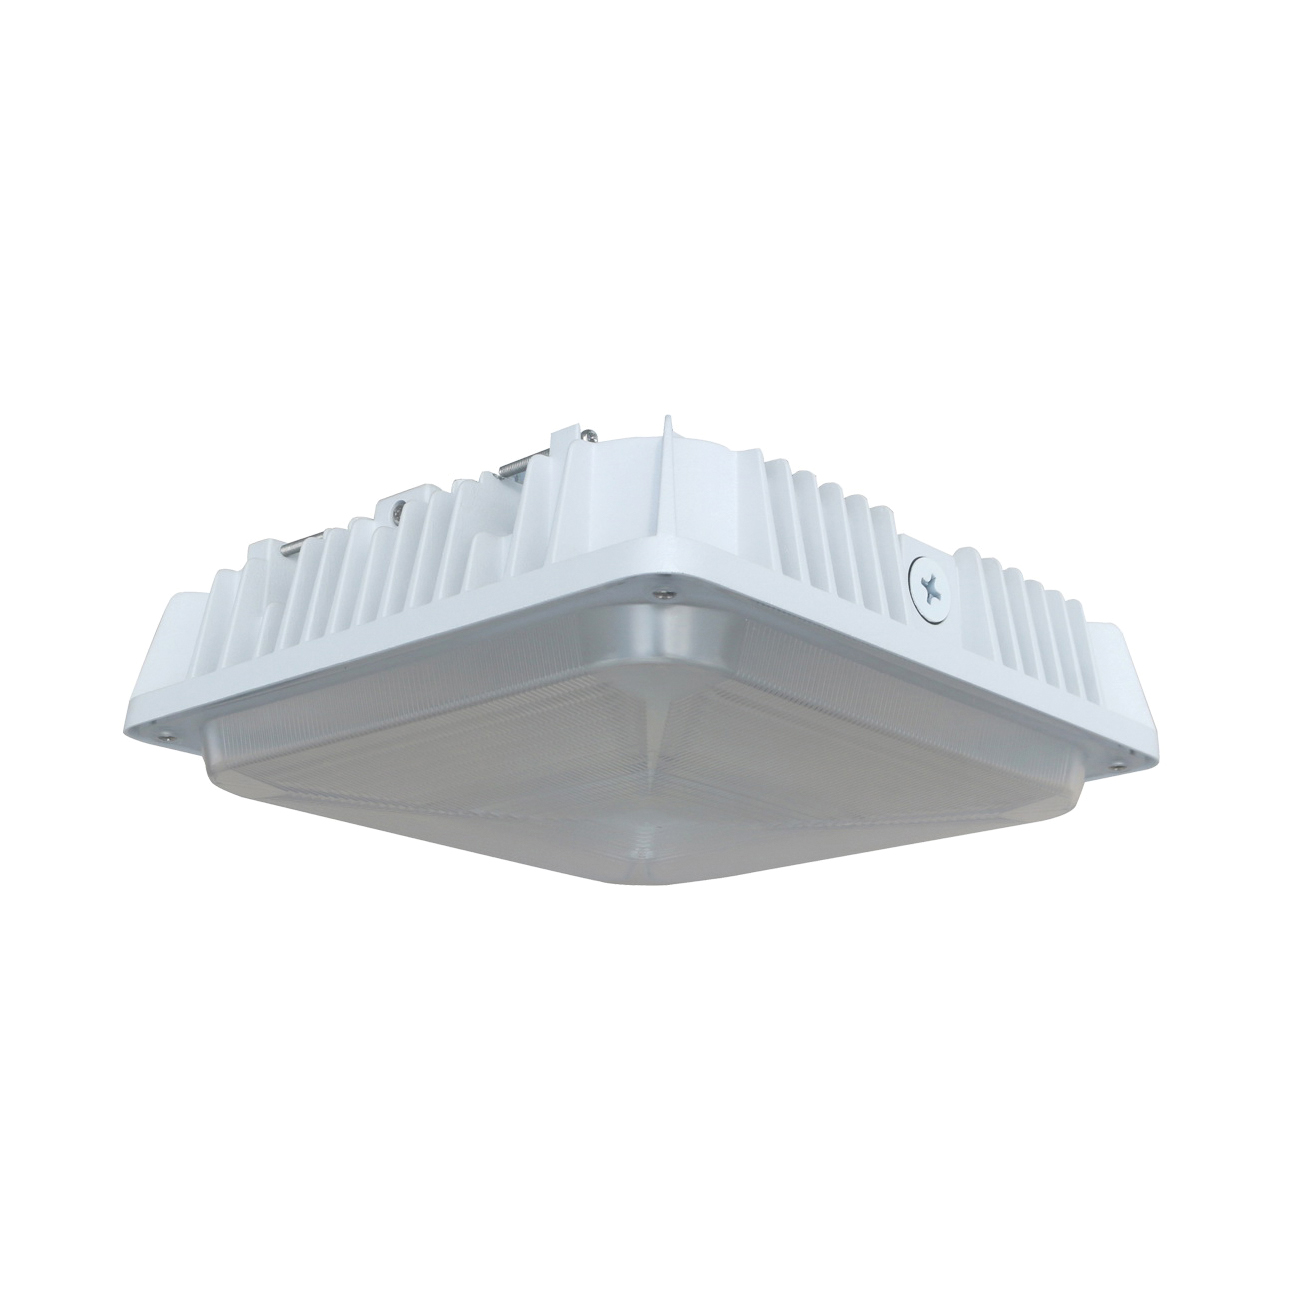 CSC LED CP40W-40K-WH